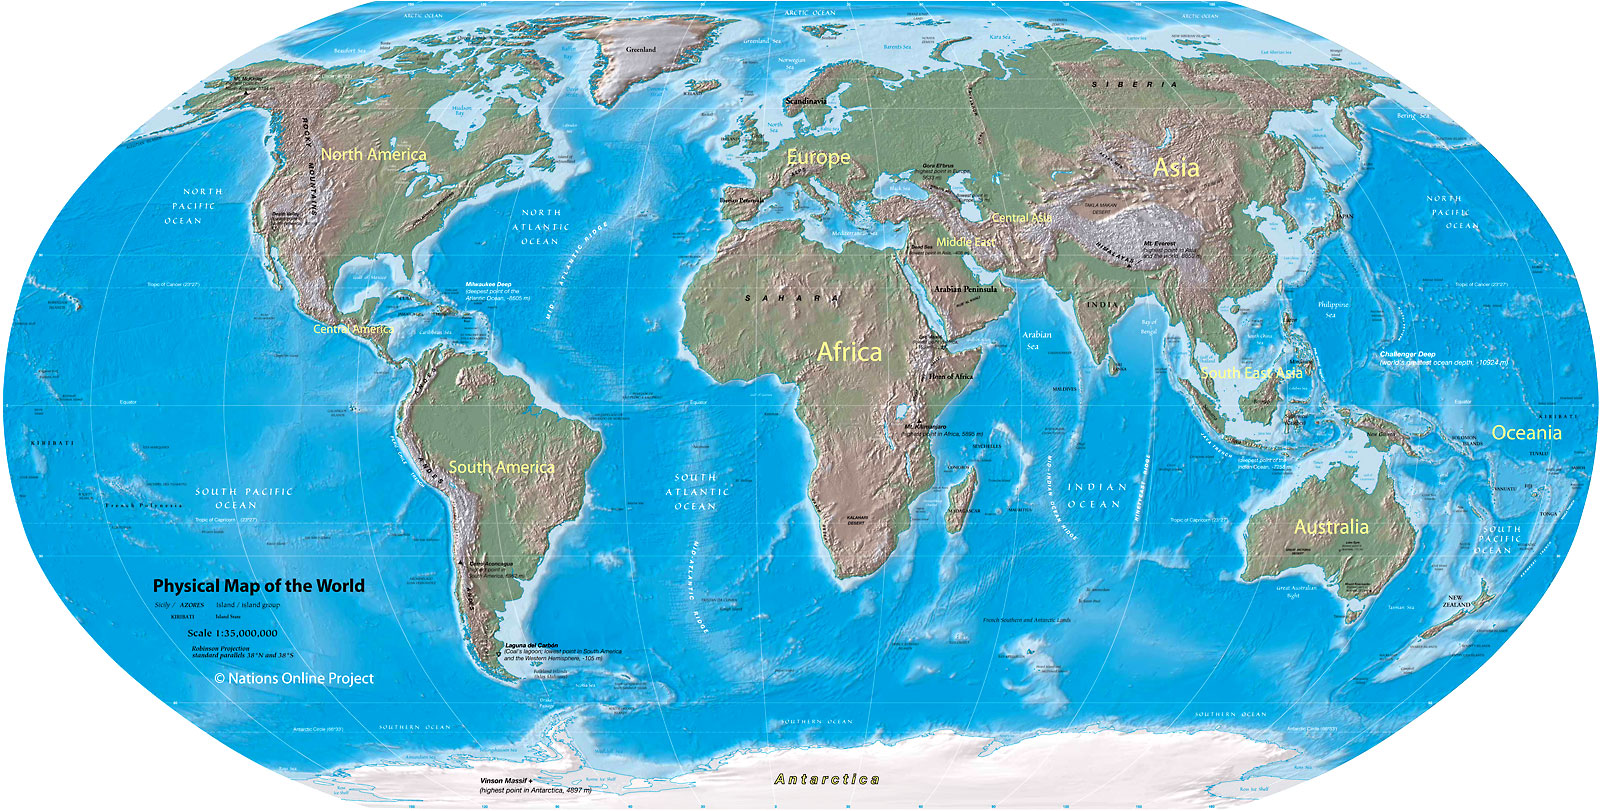 World Map Physical Map Of The World Nations Online Project - World maps online